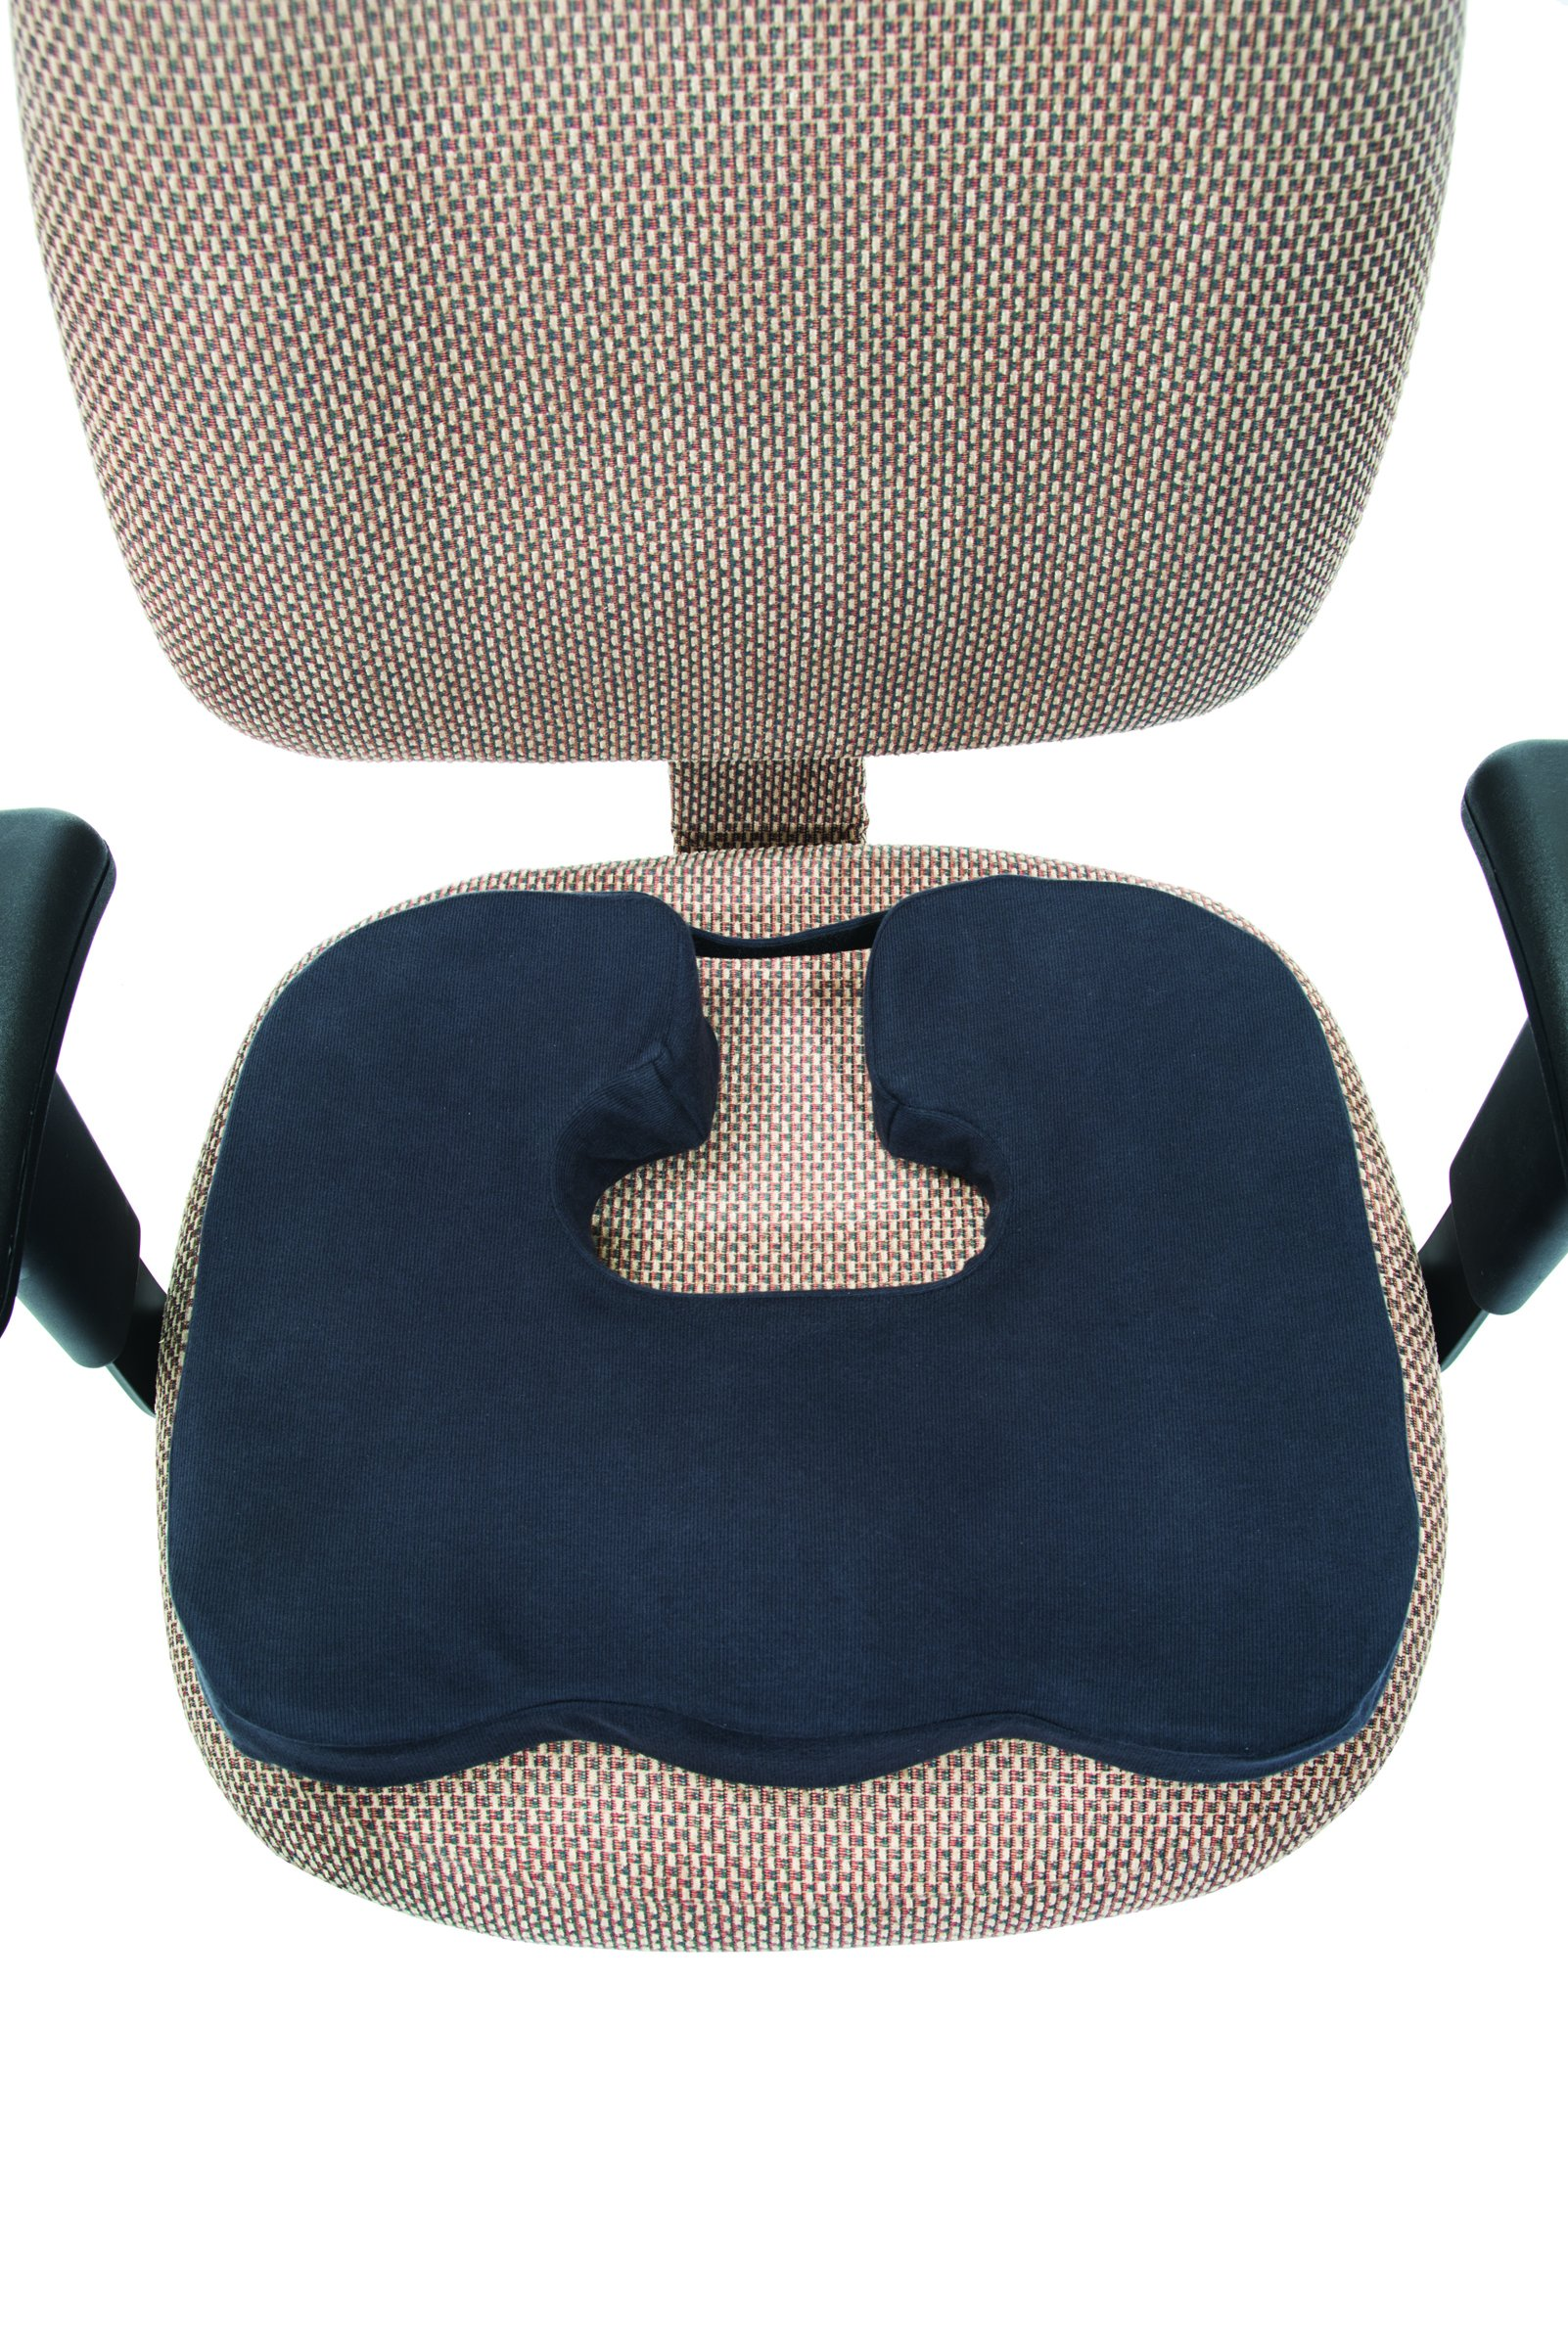 The Cushion - The Only Molded Comfort, Coccyx and Donut Cushion for Wheelchairs, Cars, the Office and More